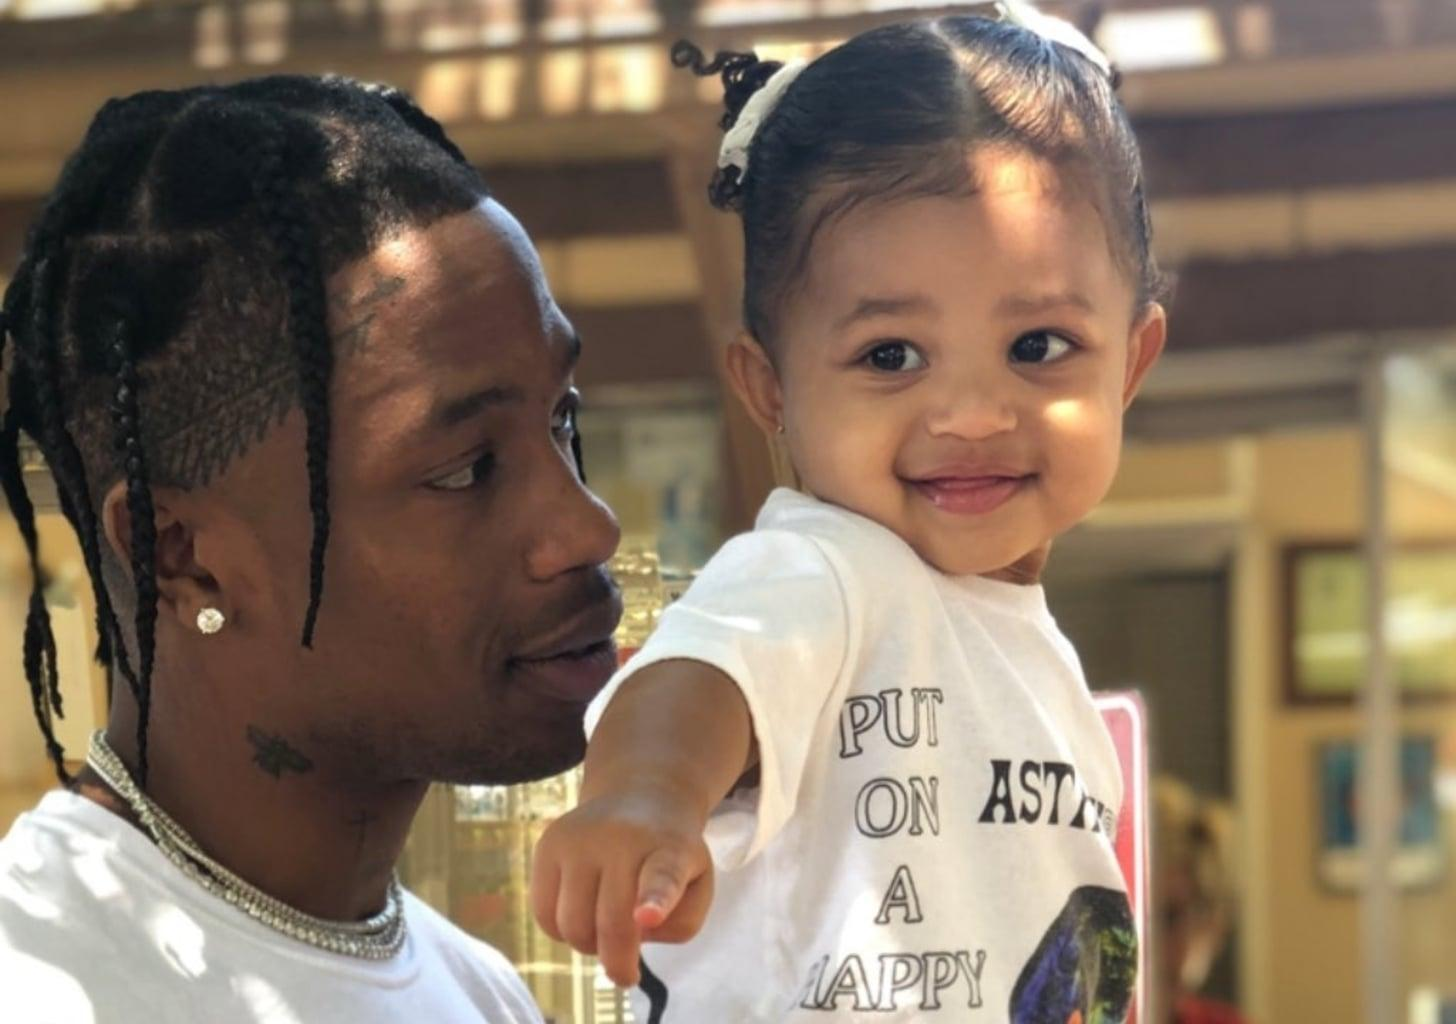 Kylie Jenner's Latest Pics And Videos Featuring Stormi And Travis Scott Have Family And Fans In Awe